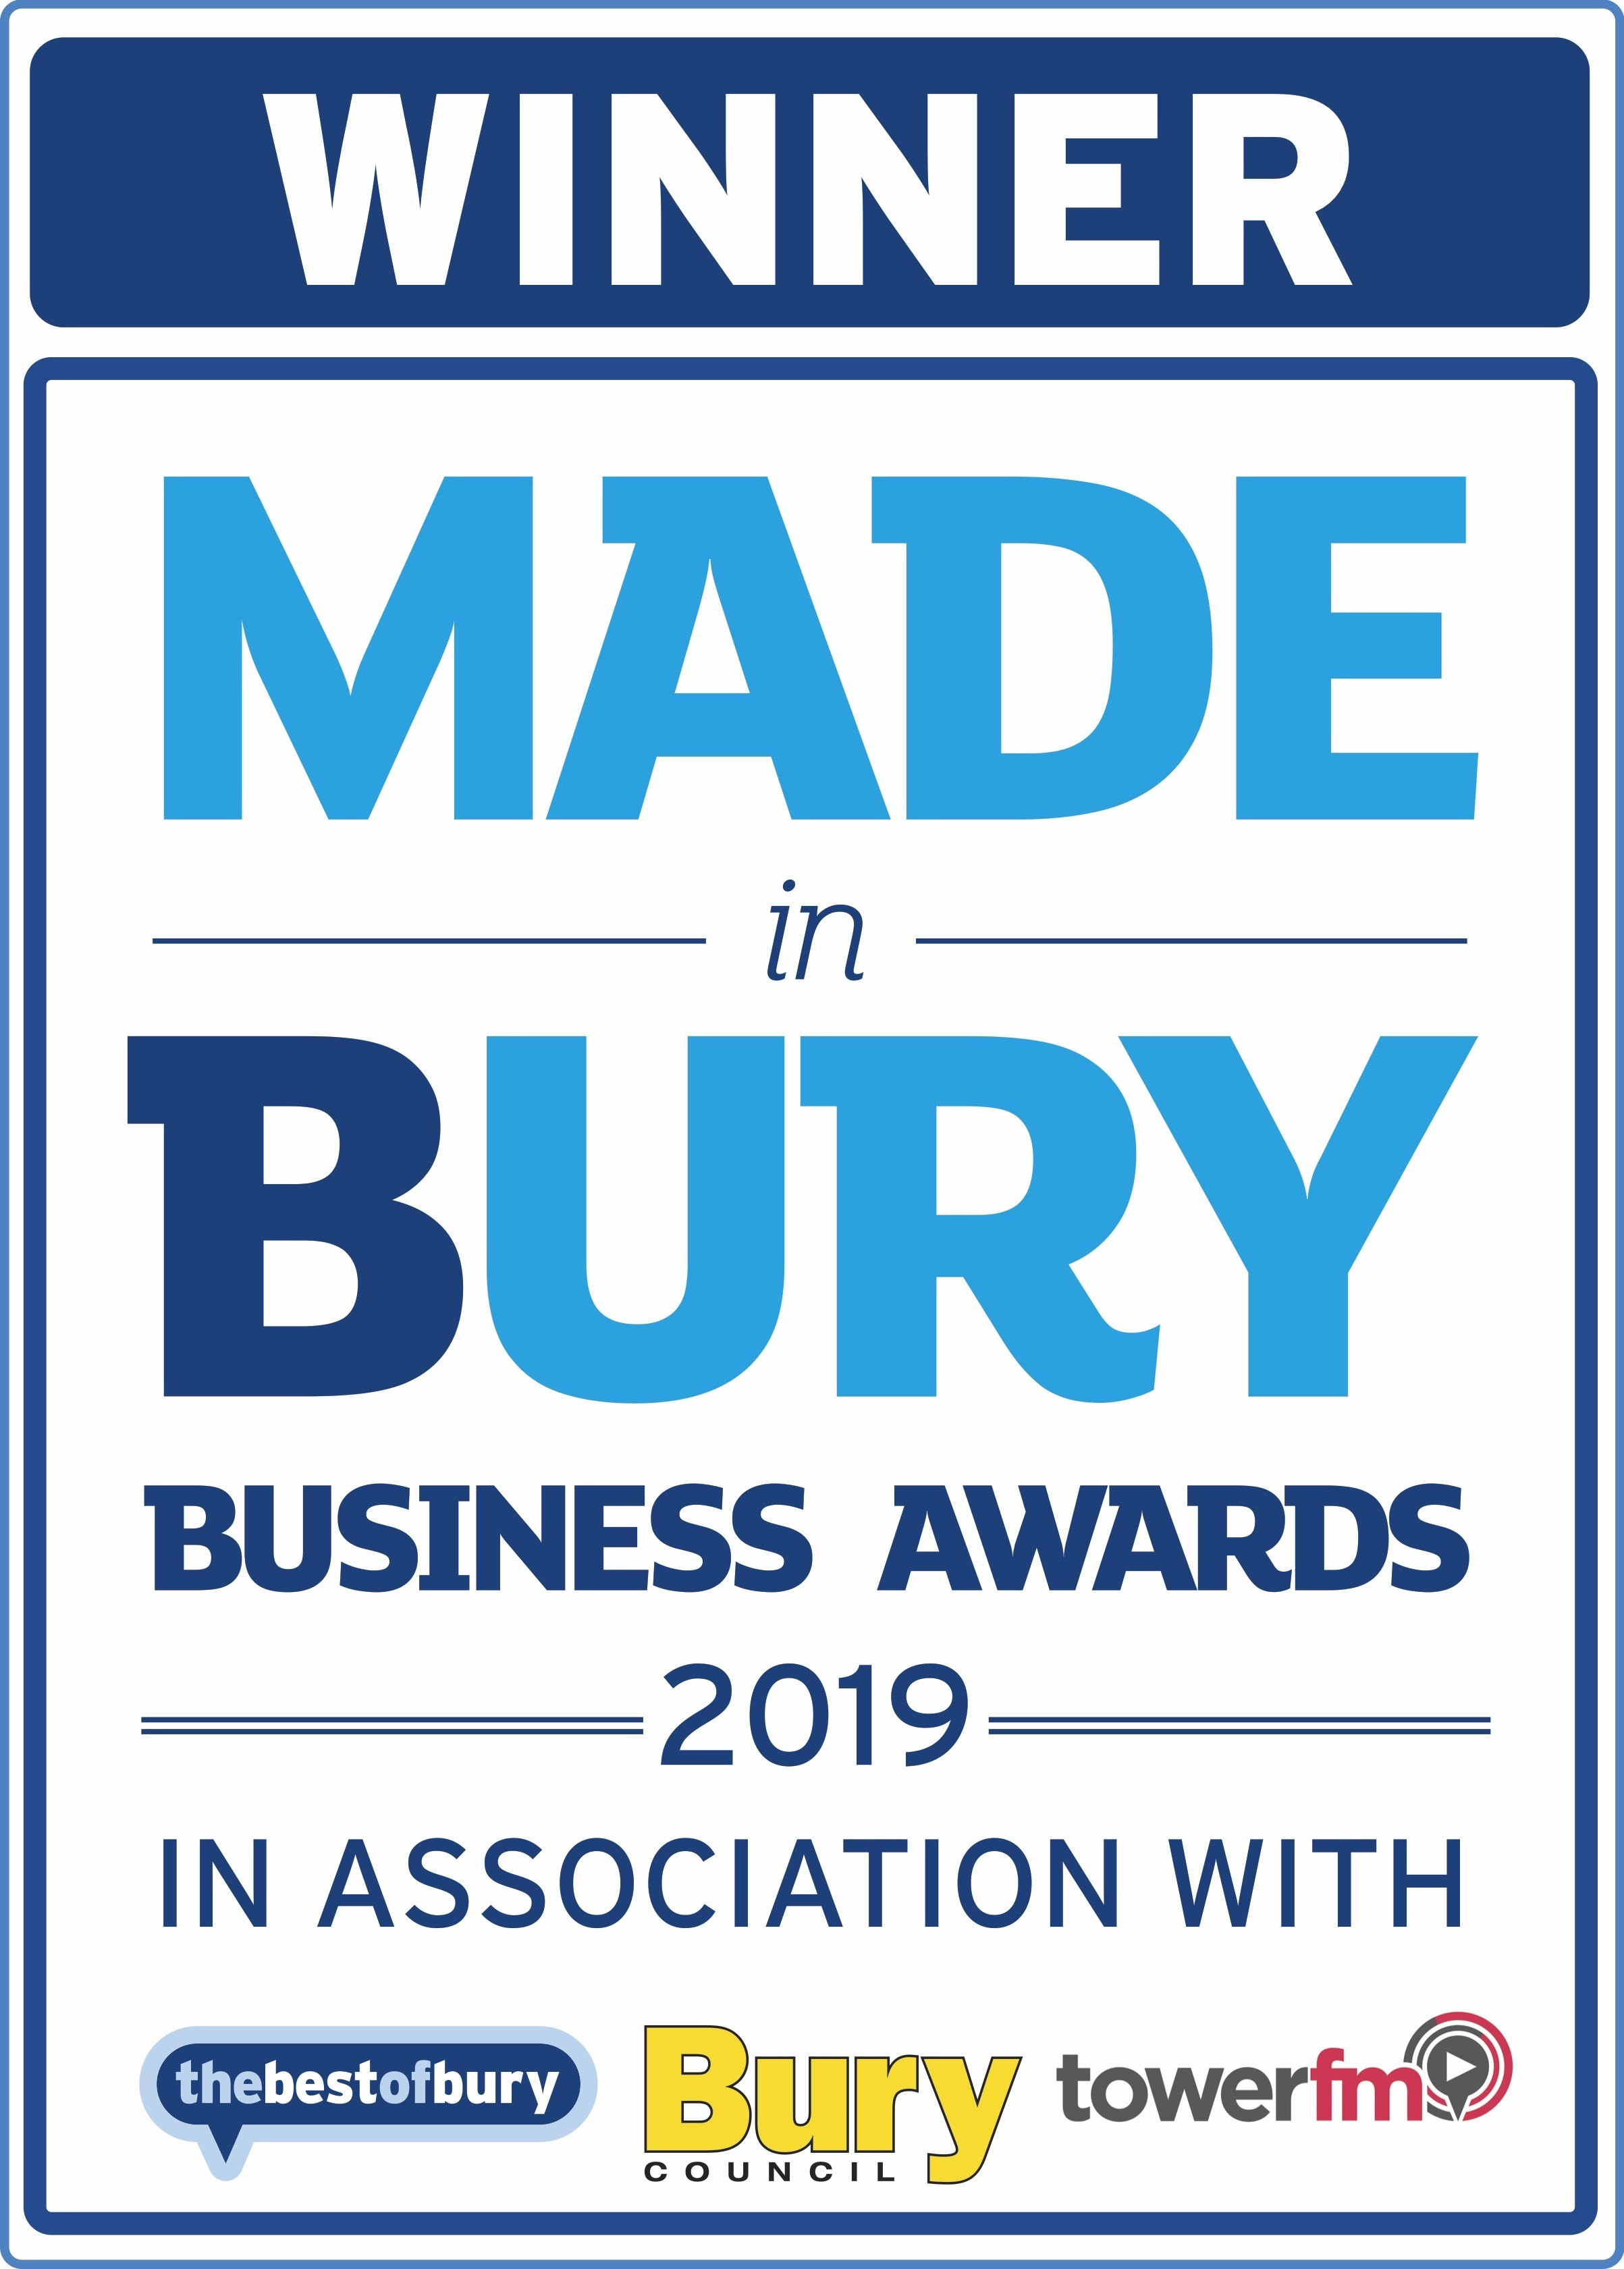 HighlWINNER  2019 Made in Bury Business Awards.